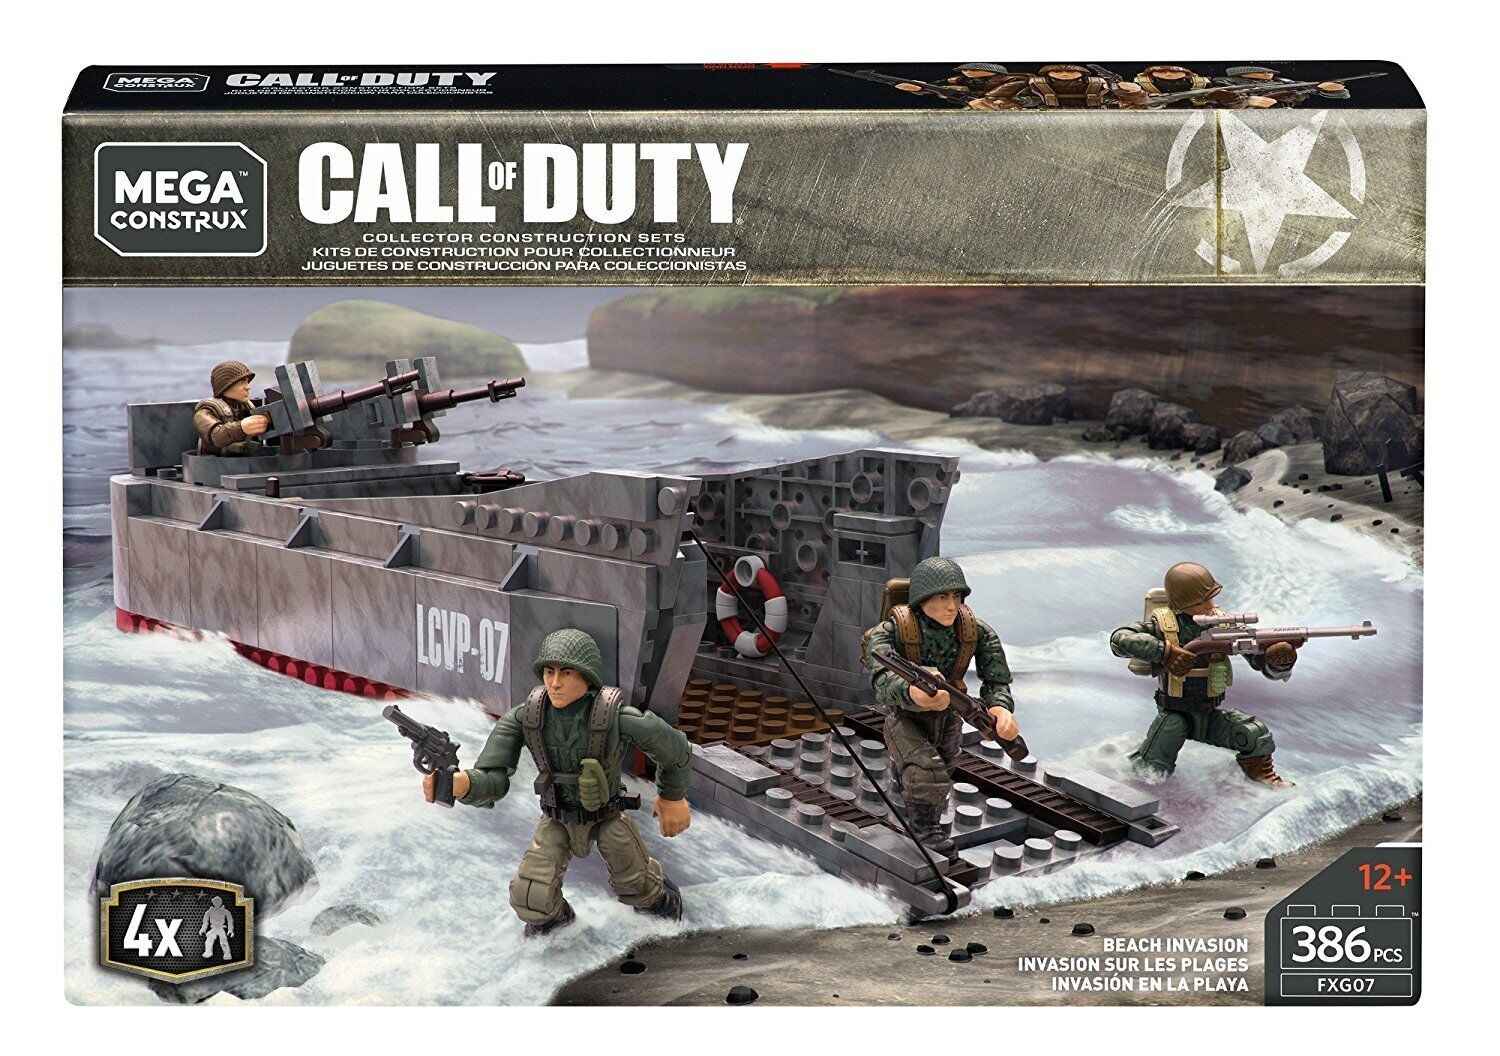 EXTREMELY RARE Mega Construx Call Of Duty WWII Beach Invasion